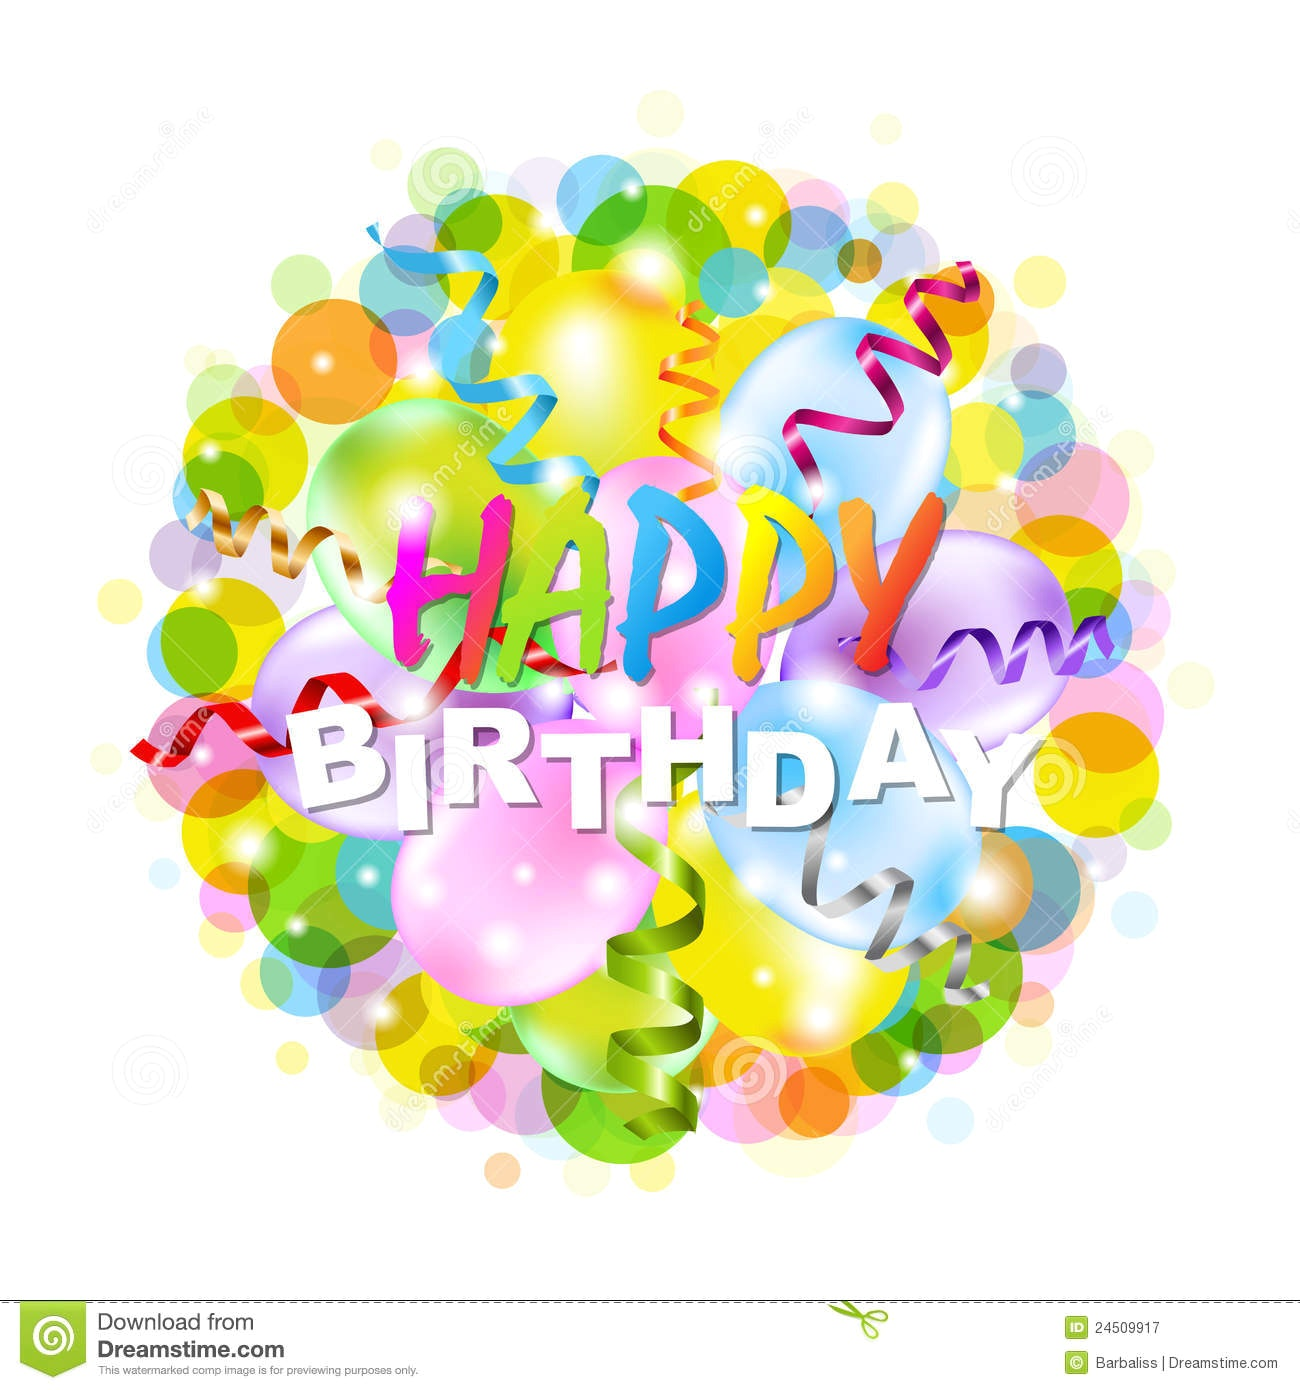 birthday poster background ; amazing-birthday-posters-free-download-and-best-ideas-of-poster-background-11